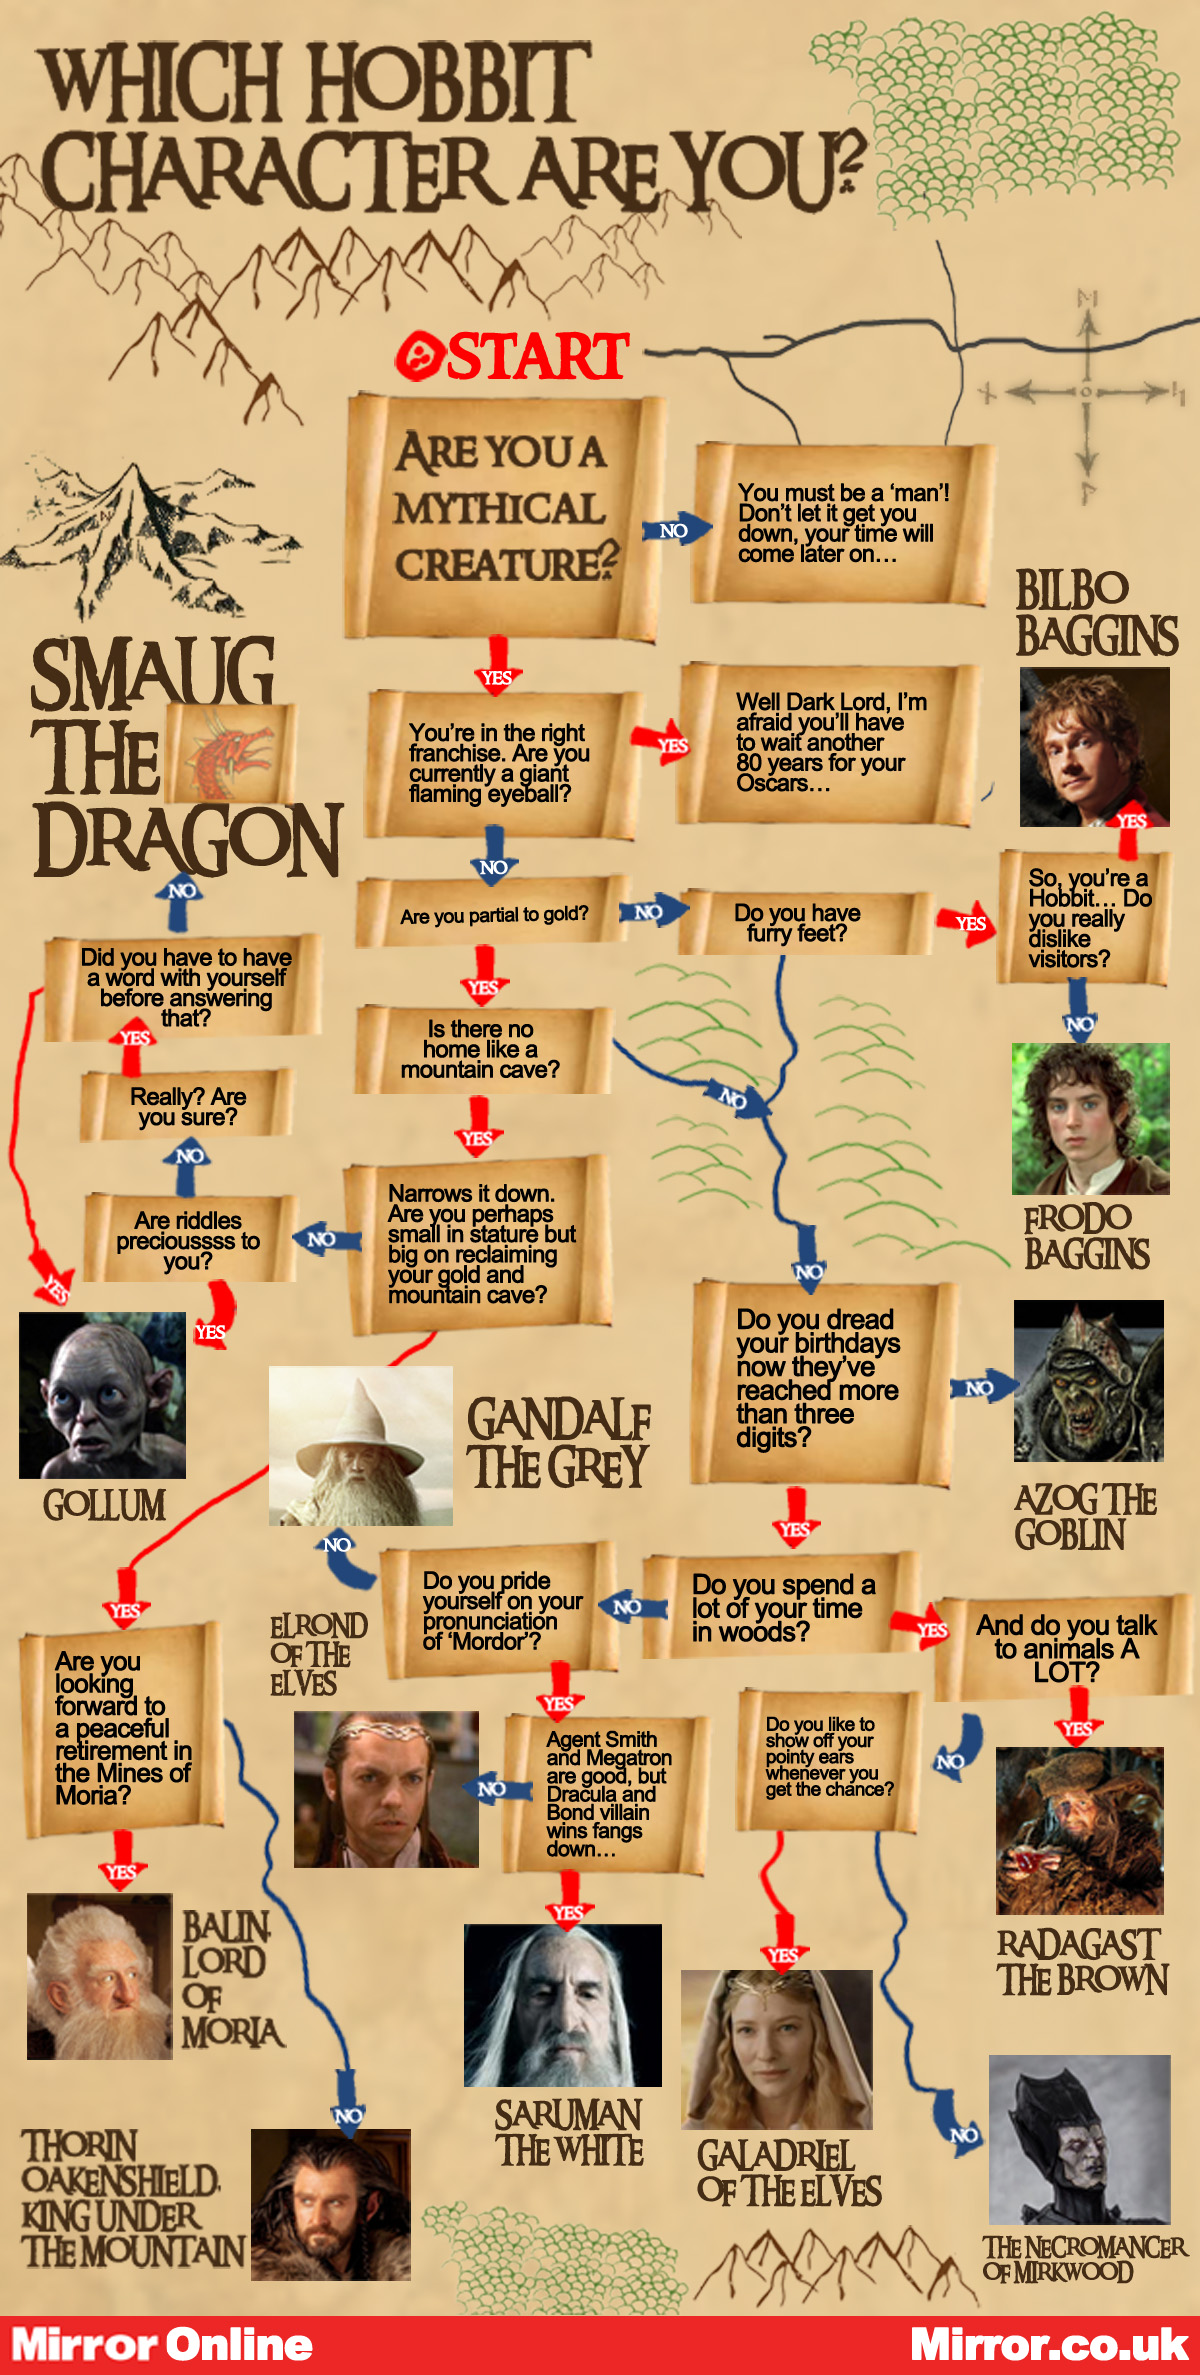 Which Character from the Hobbit are You? - Mirror Online